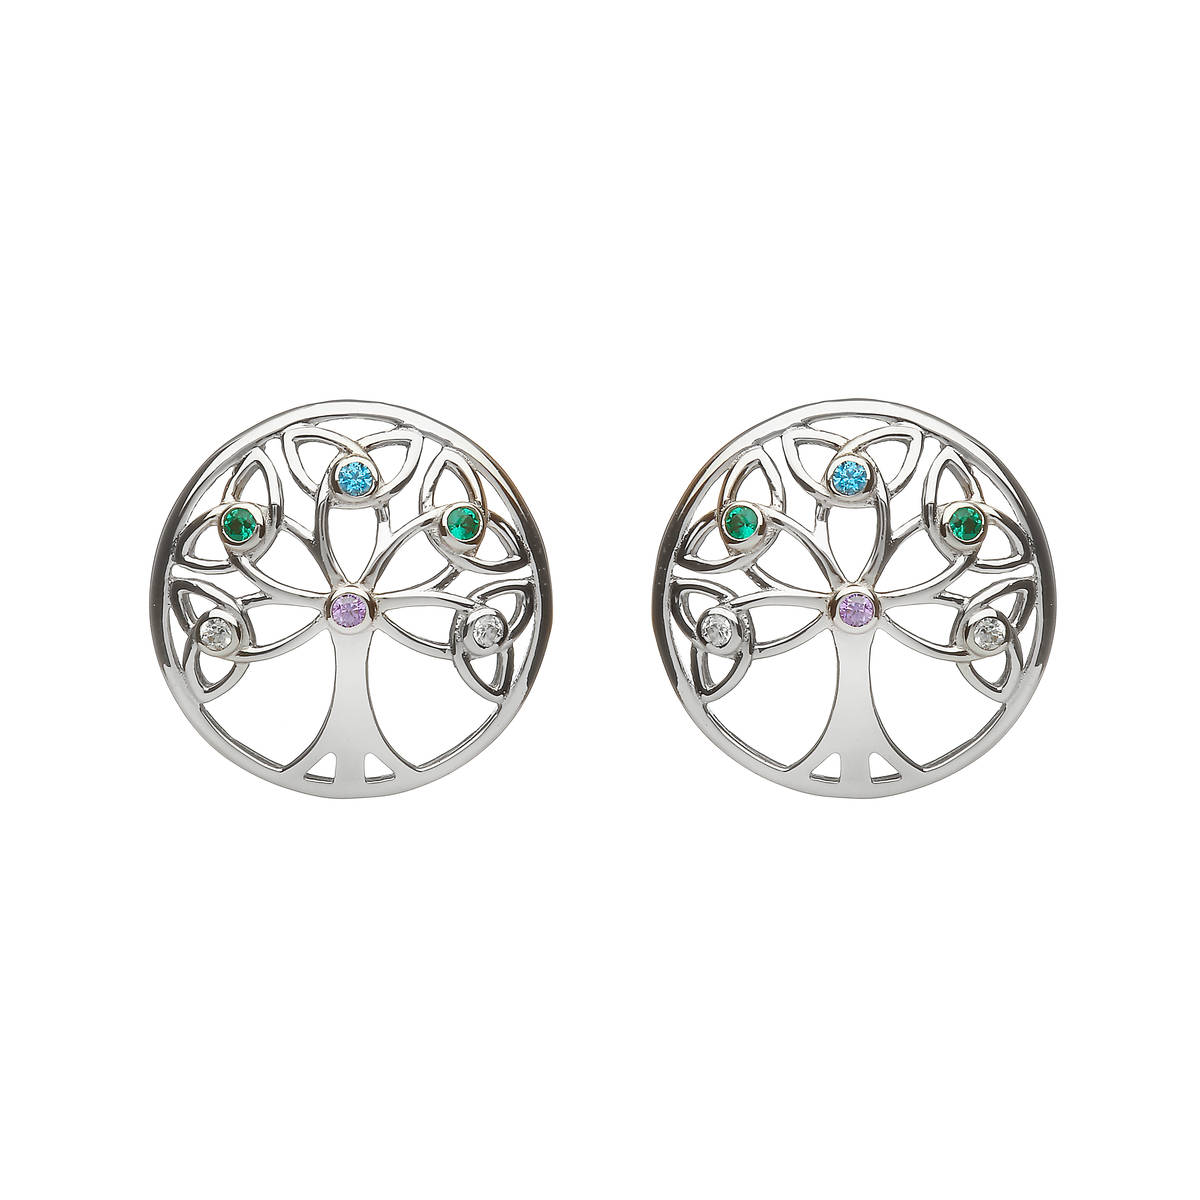 Sterling Silver Circular Tree Of Life Design Earrings Set With Cubic Zirconias